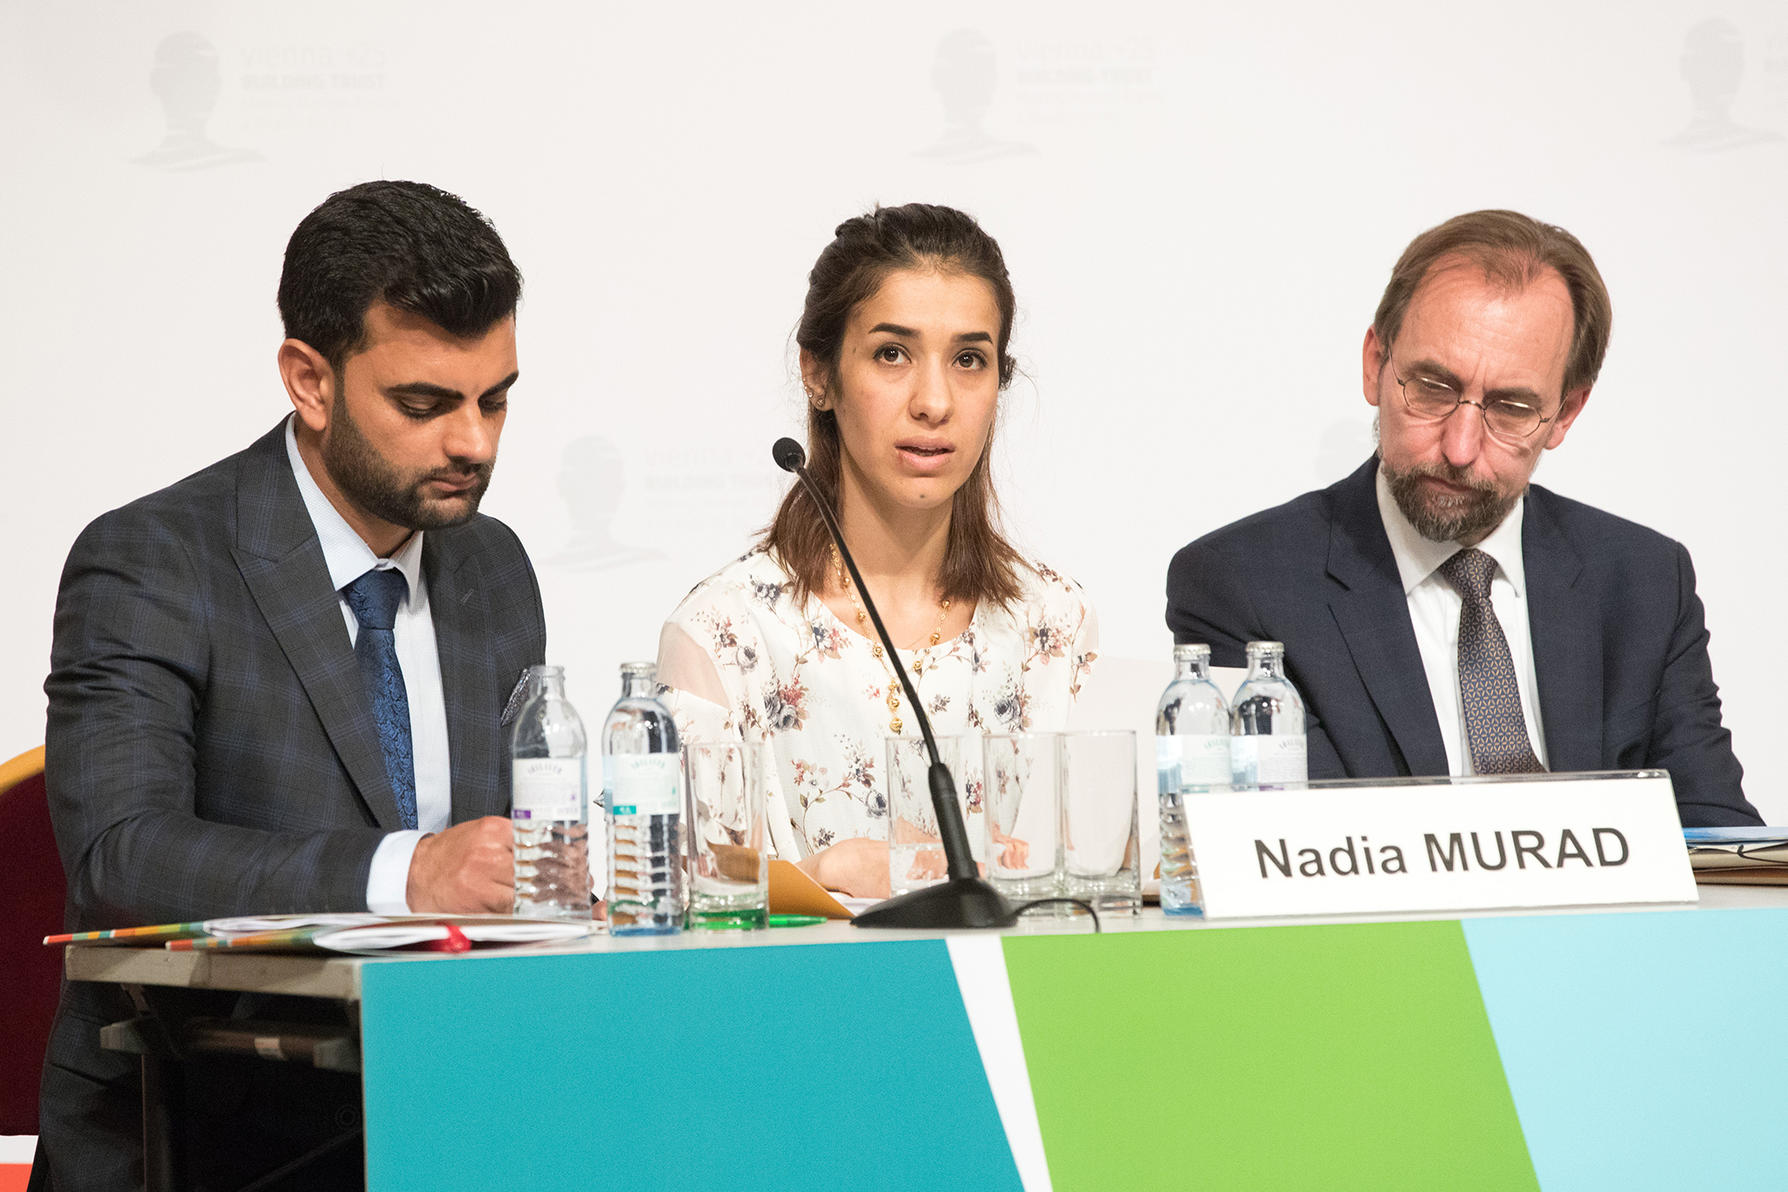 Nadia Murad (center), UNODC Goodwill Ambassador for the Dignity of Human Rights Trafficking, Iraq; Zeid Ra'ad Al Hussein (right), former UN High Commissioner for Human Rights (Photo: photonews.at/Anna Rauchenberger)